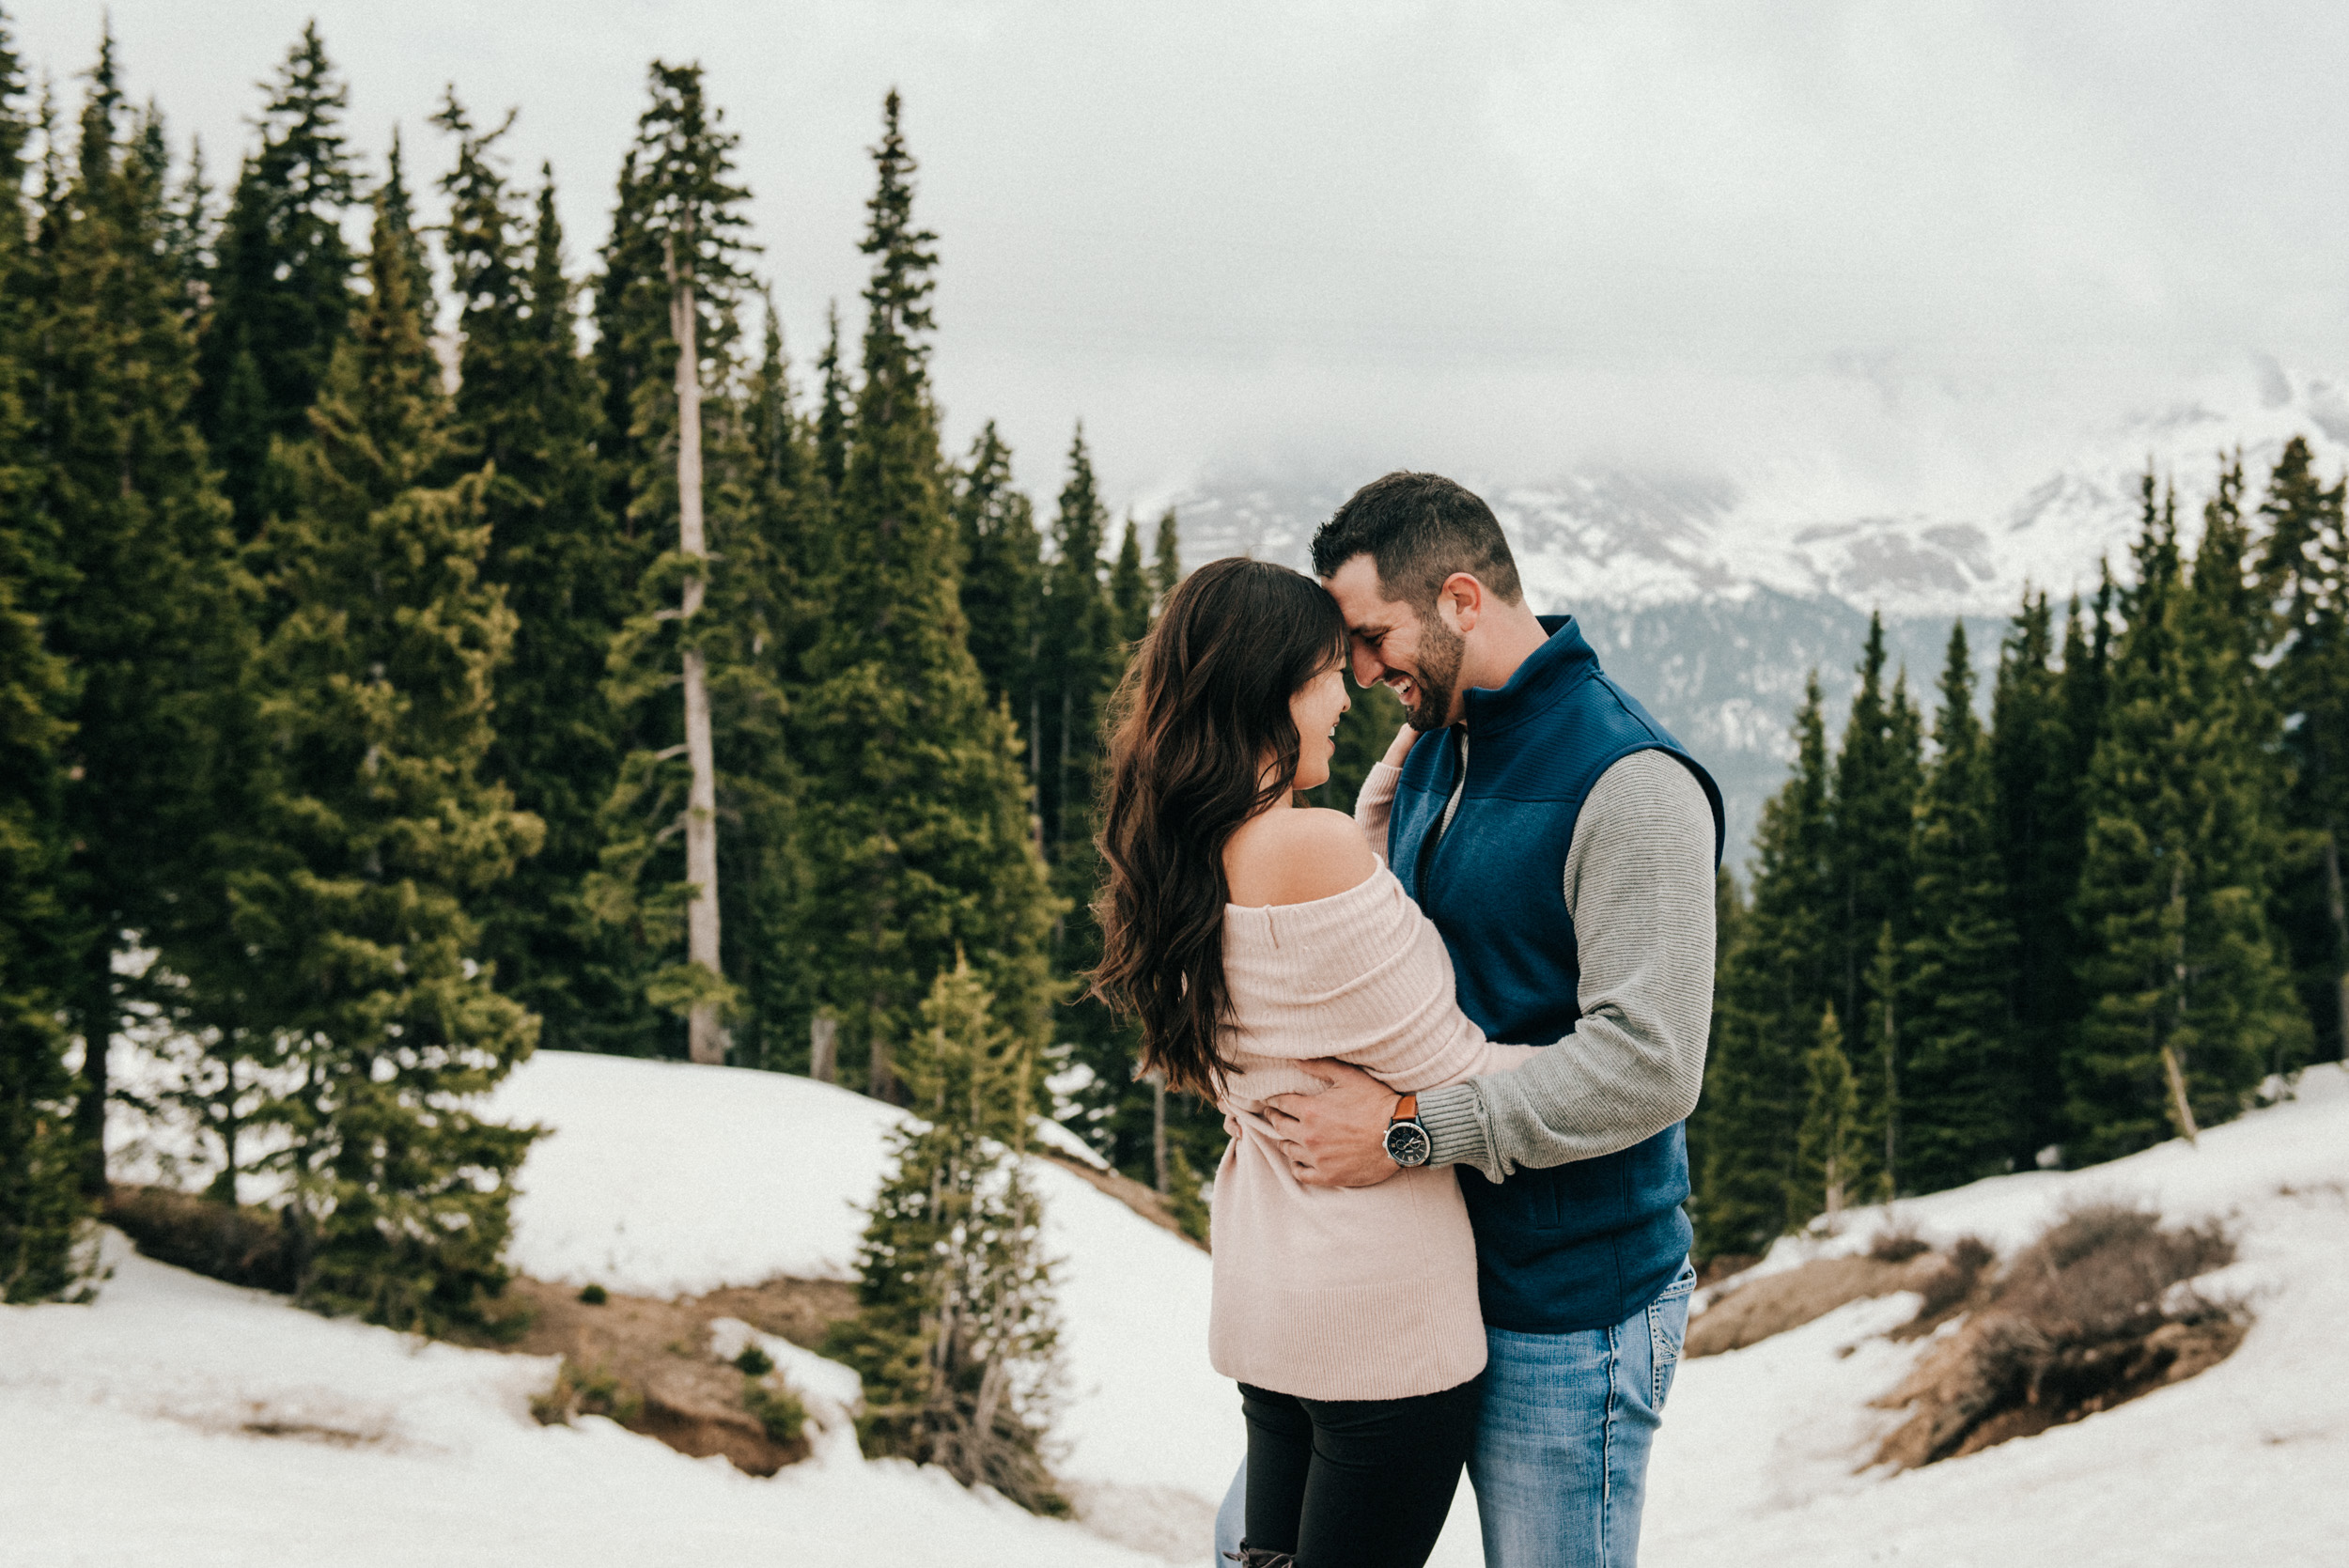 An intimate, snowy engagement session in the Colorado Rockies.